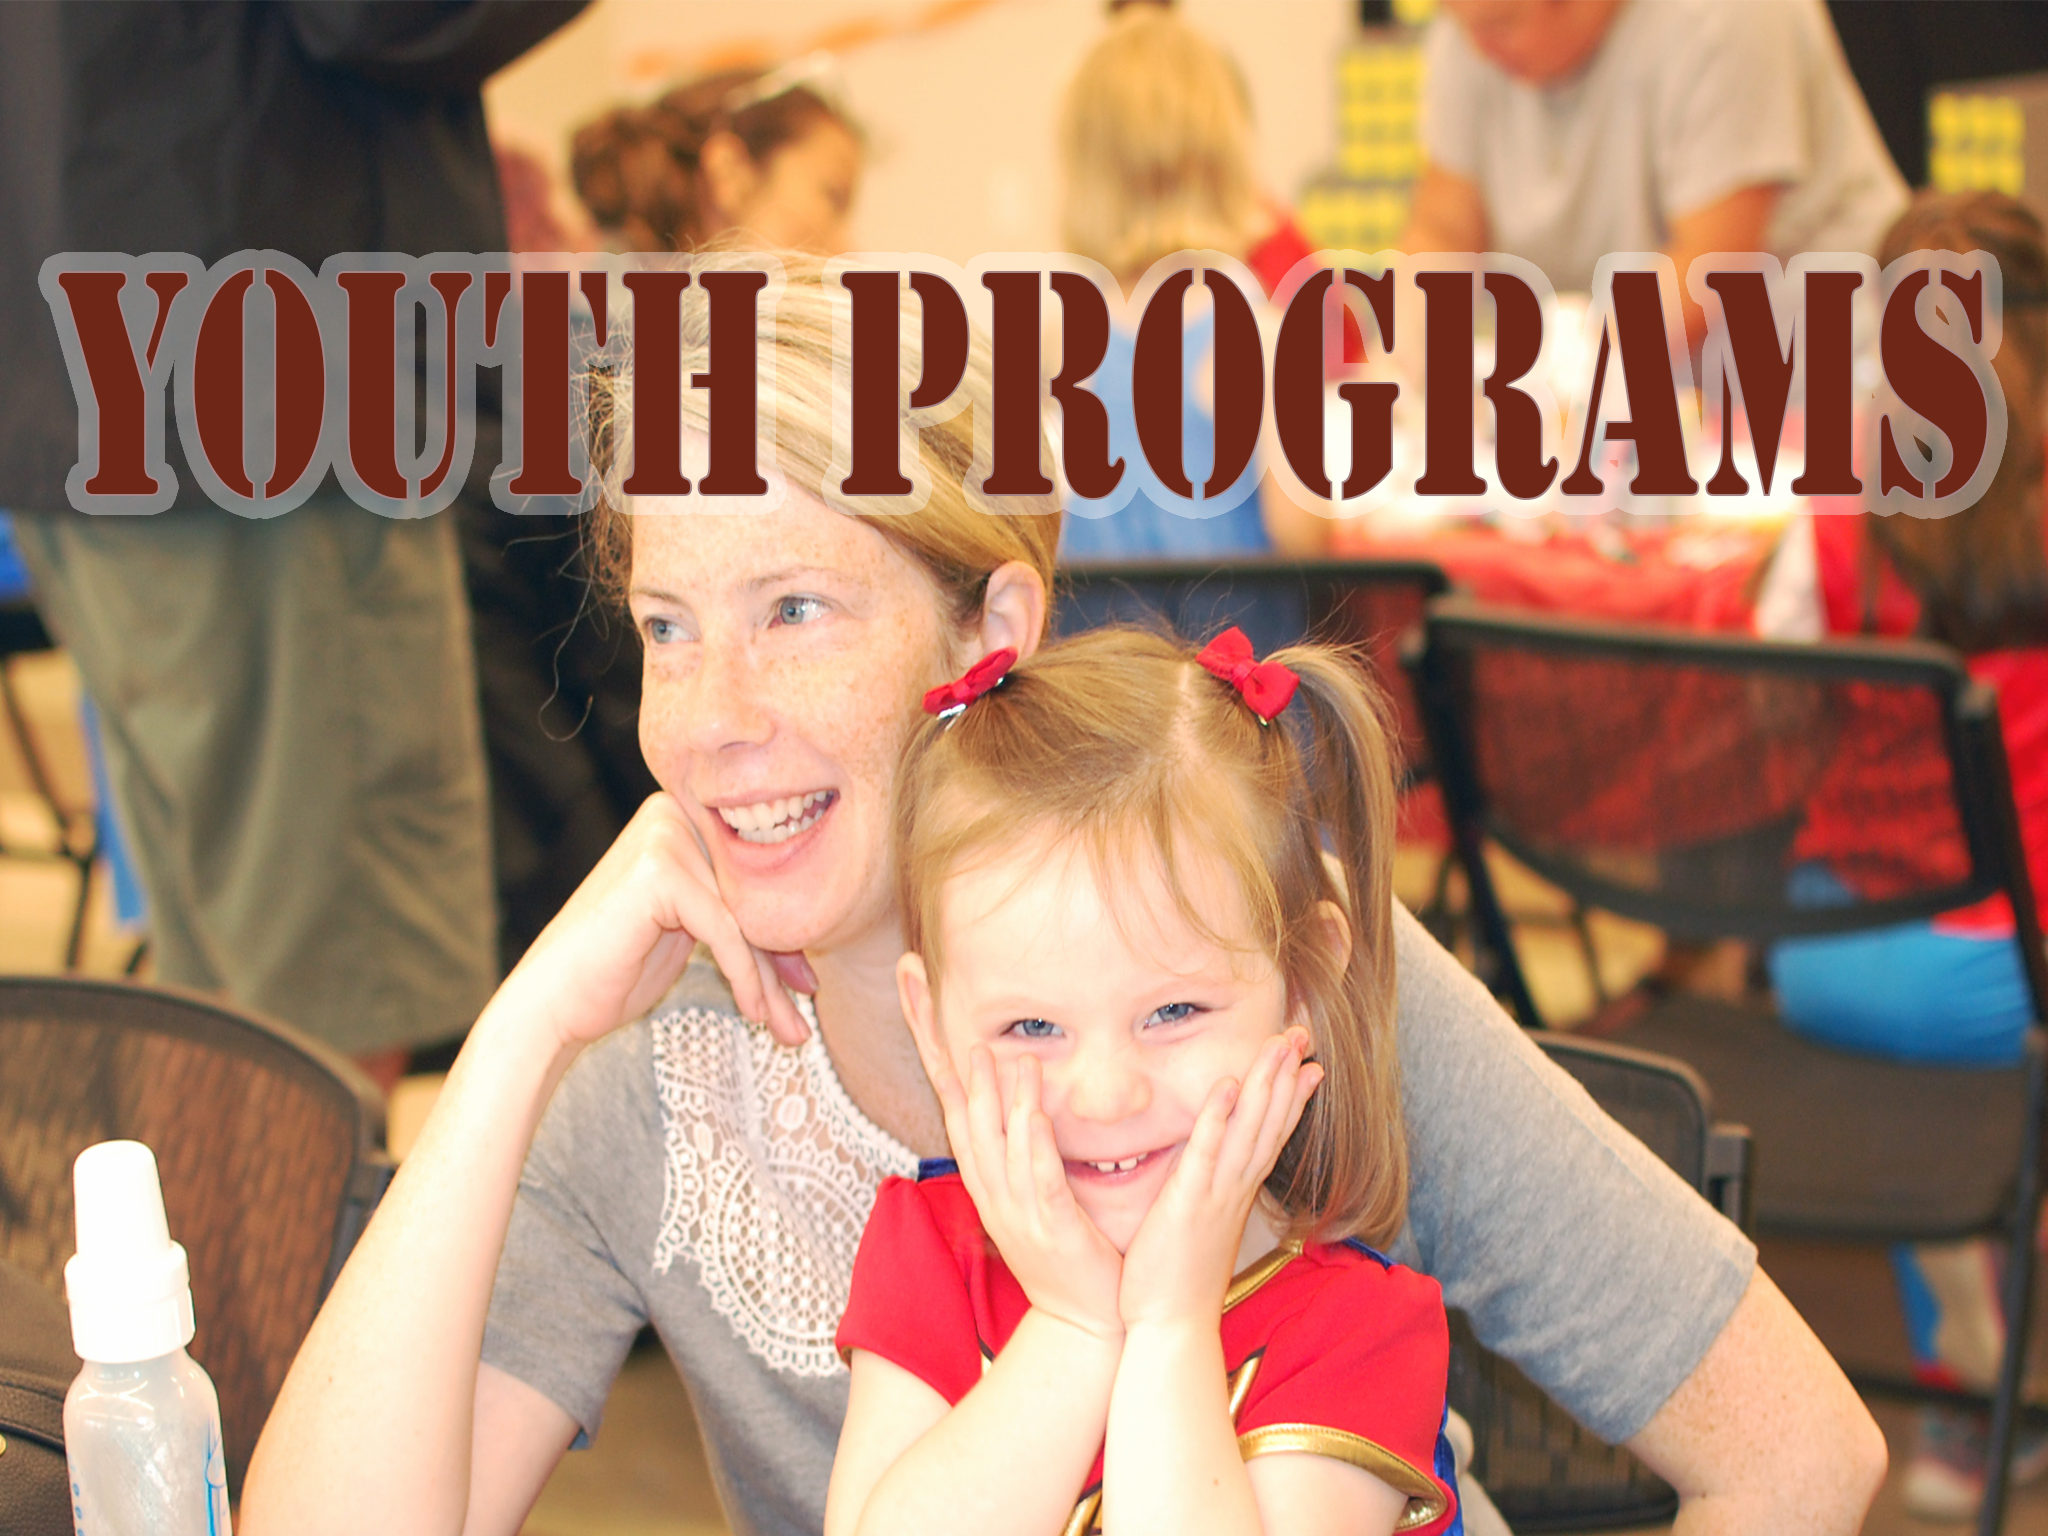 YouthProgramGraphic